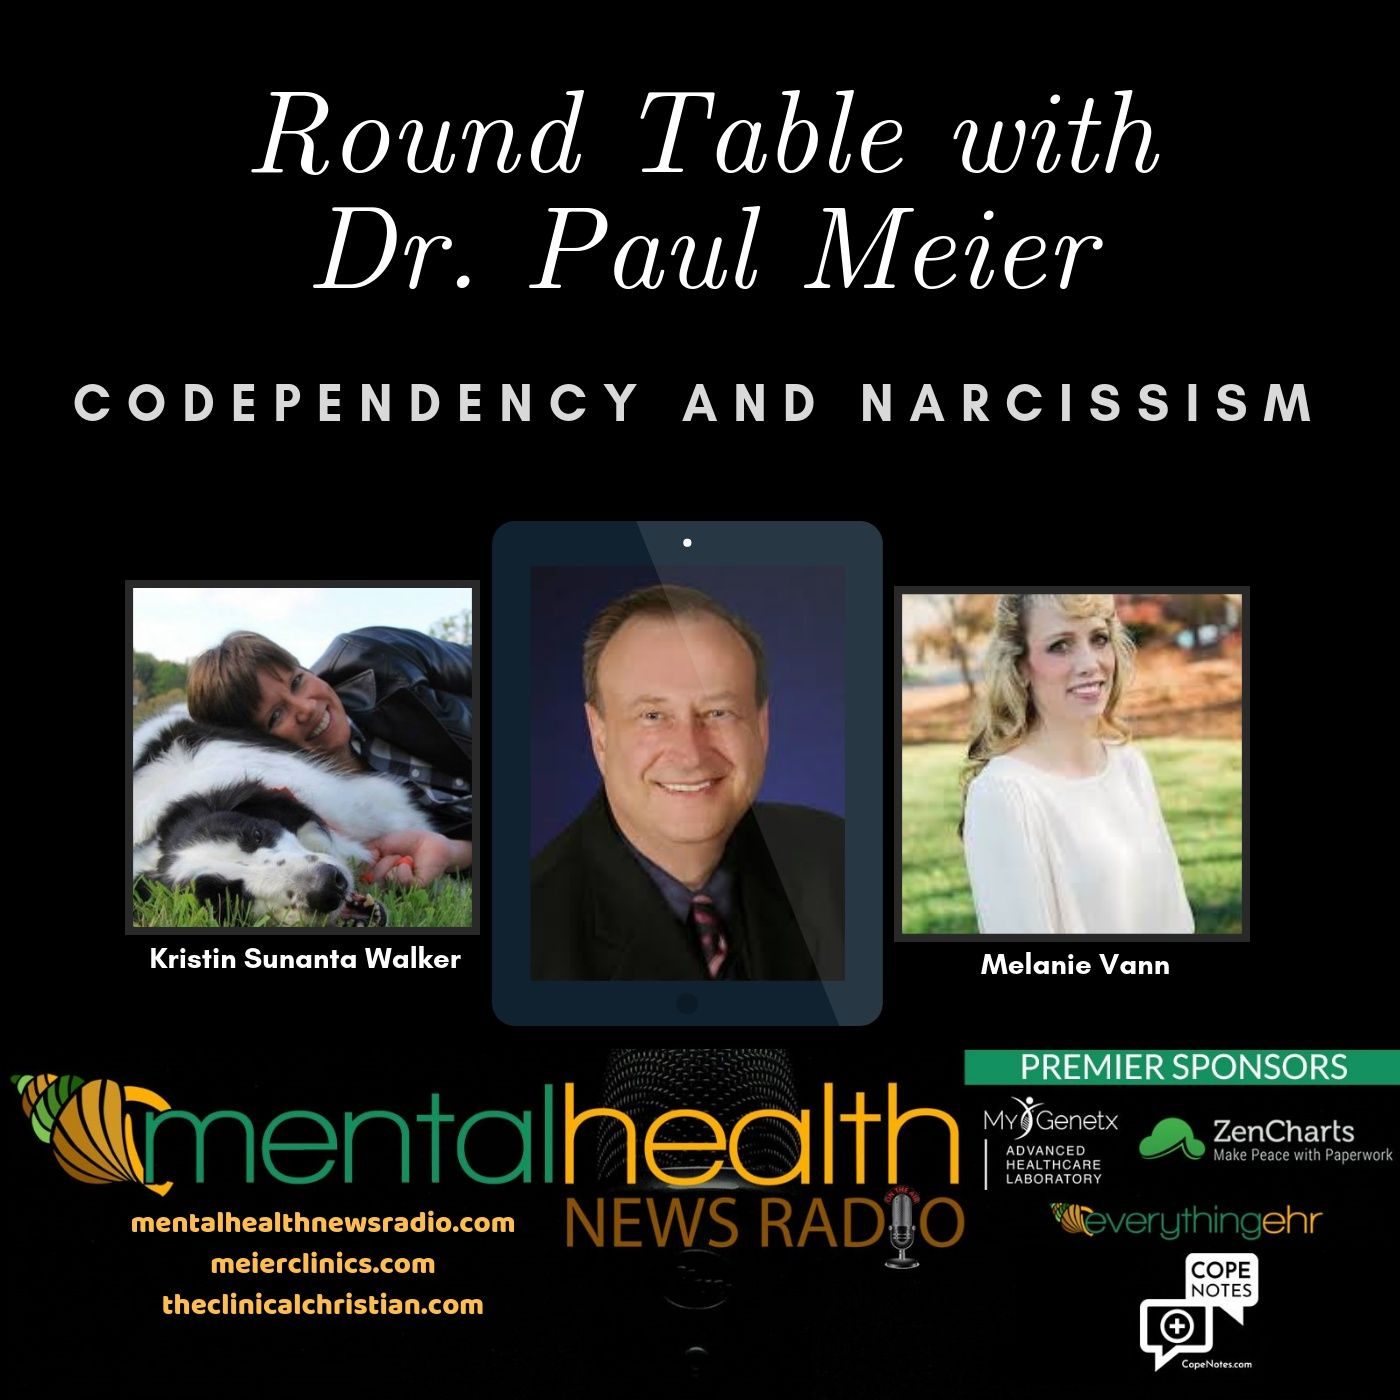 Mental Health News Radio - Round Table with Dr. Paul Meier: Codependency and Narcissism